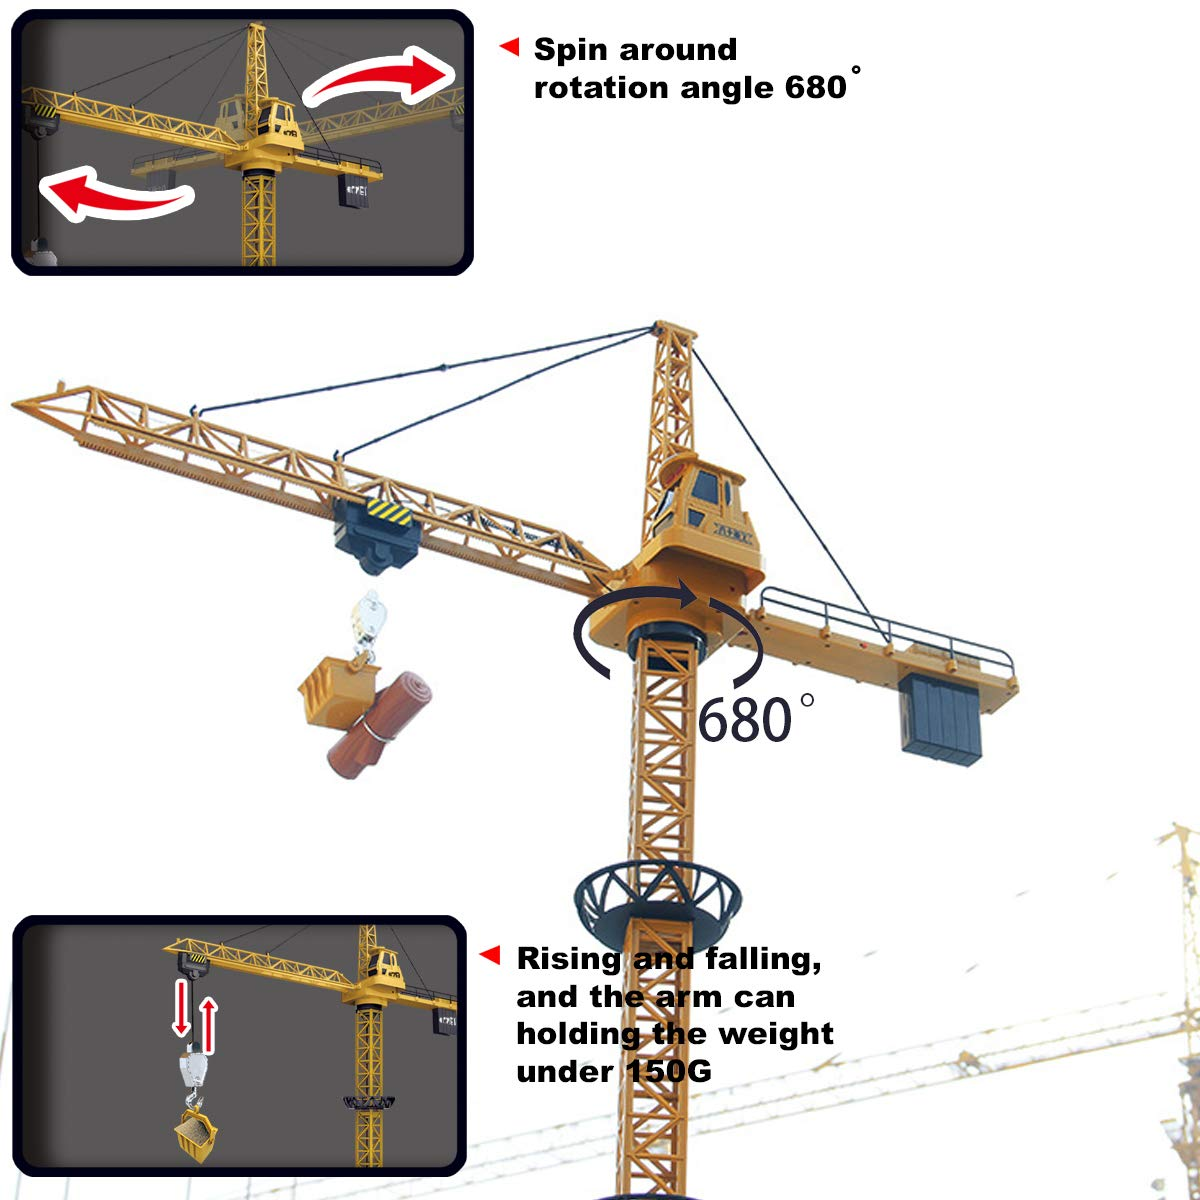 Fistone 6 Channel RC Tower Crane, 50.4 inches 680 Degree Rotation Lift Model 2.4GHz Remote Control Construction Crane Toy with Tower Light and Simulation Sound for Kids by Fistone (Image #3)